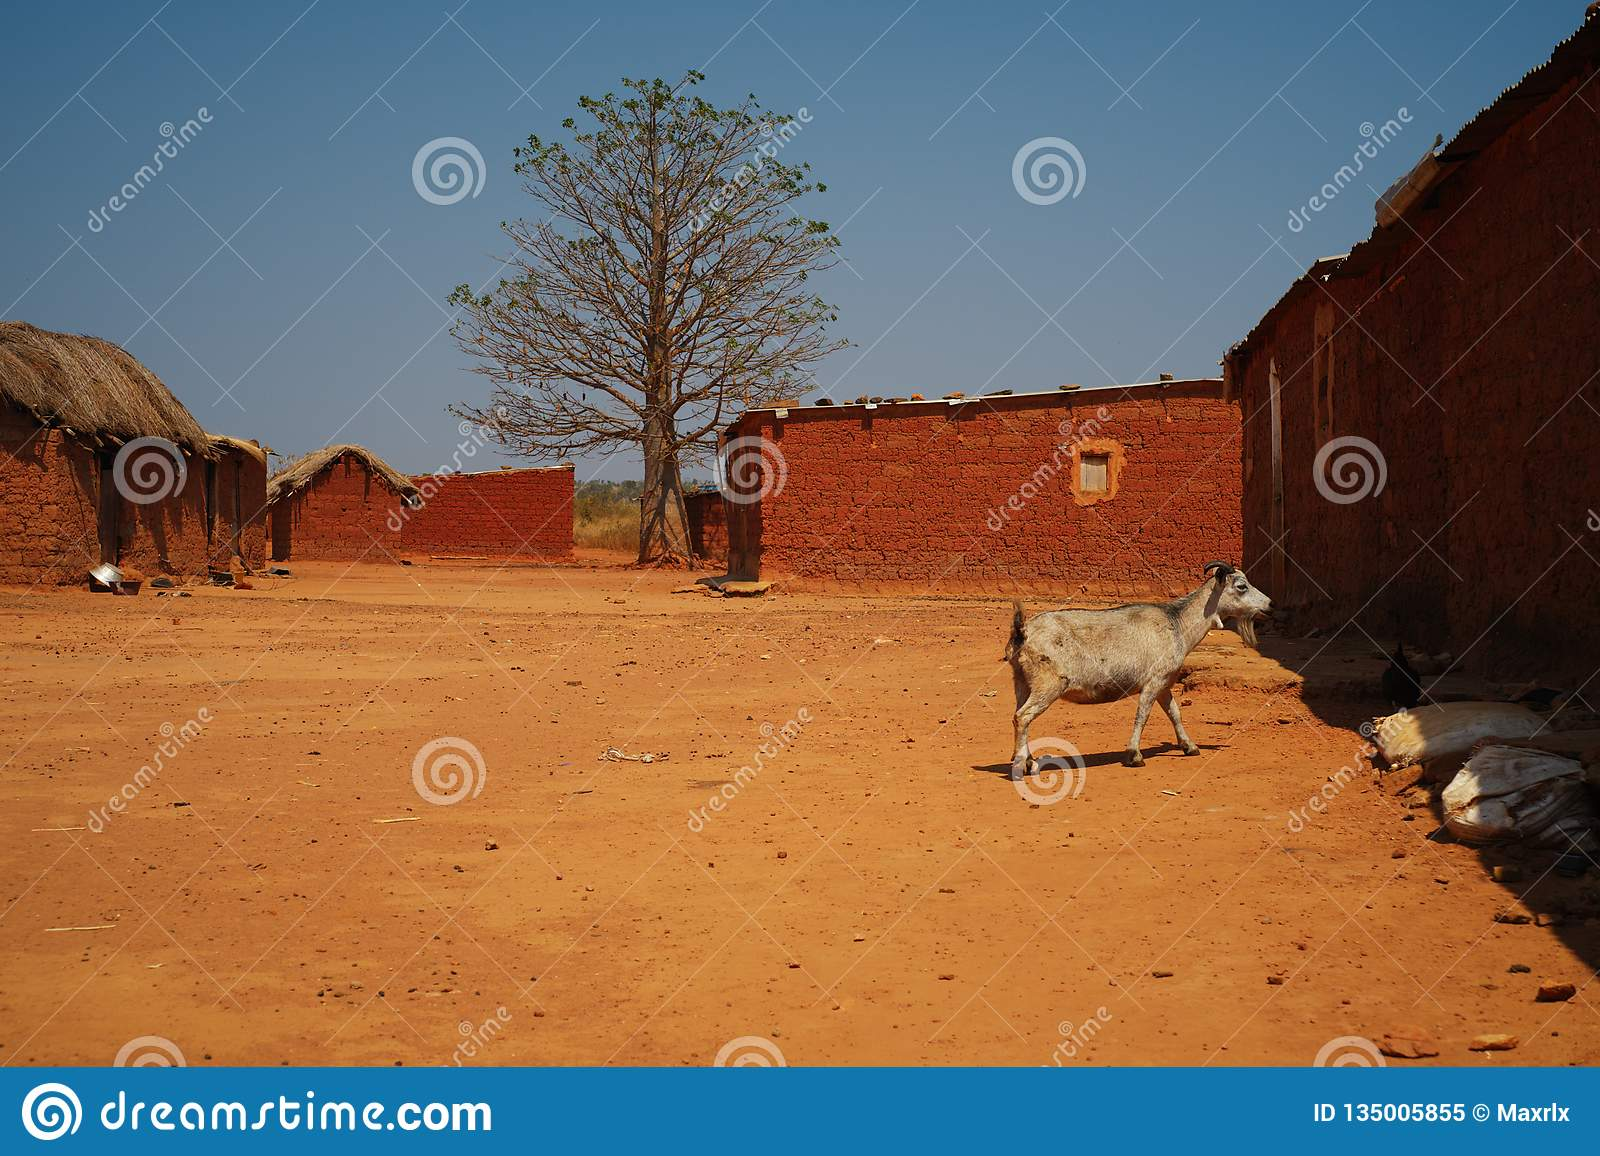 Wide view of goat in Malanje village, Angola